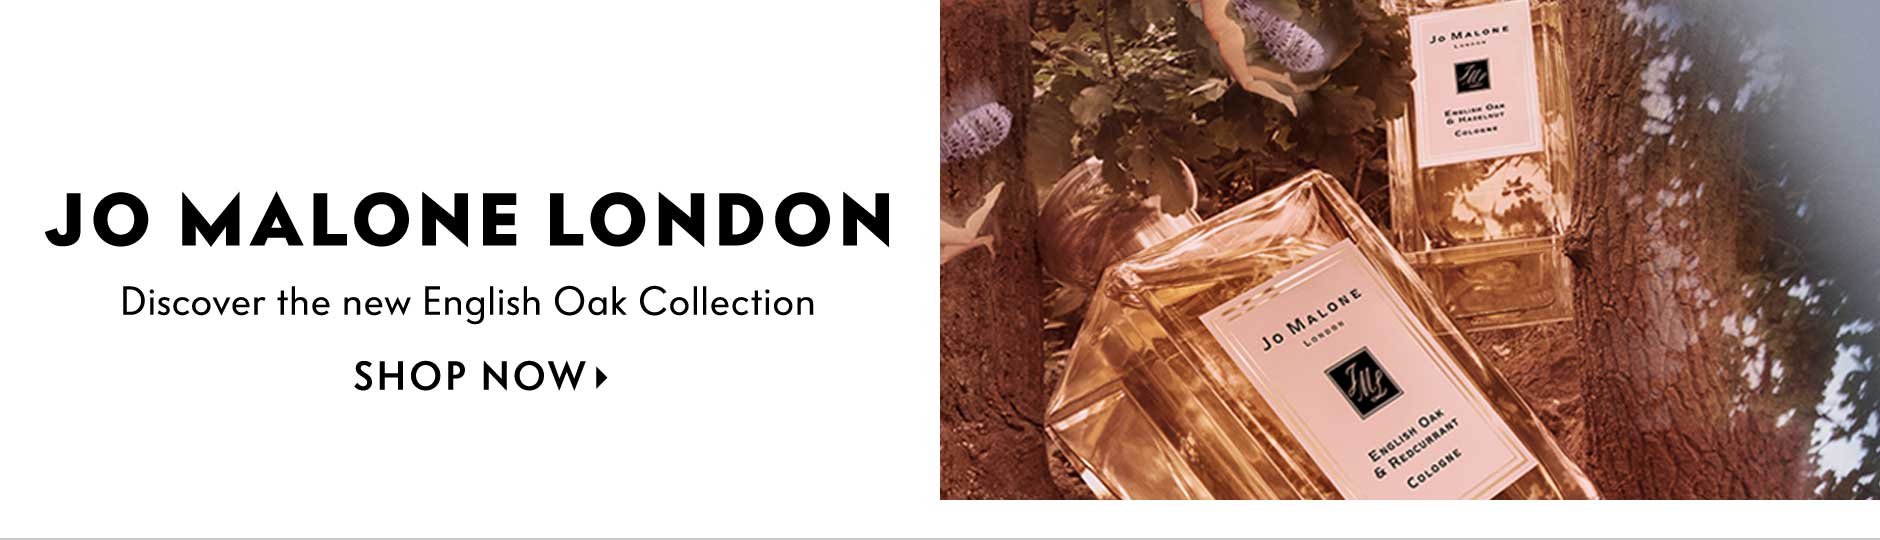 Jo Malone London - discover the new english oak collection - shop now